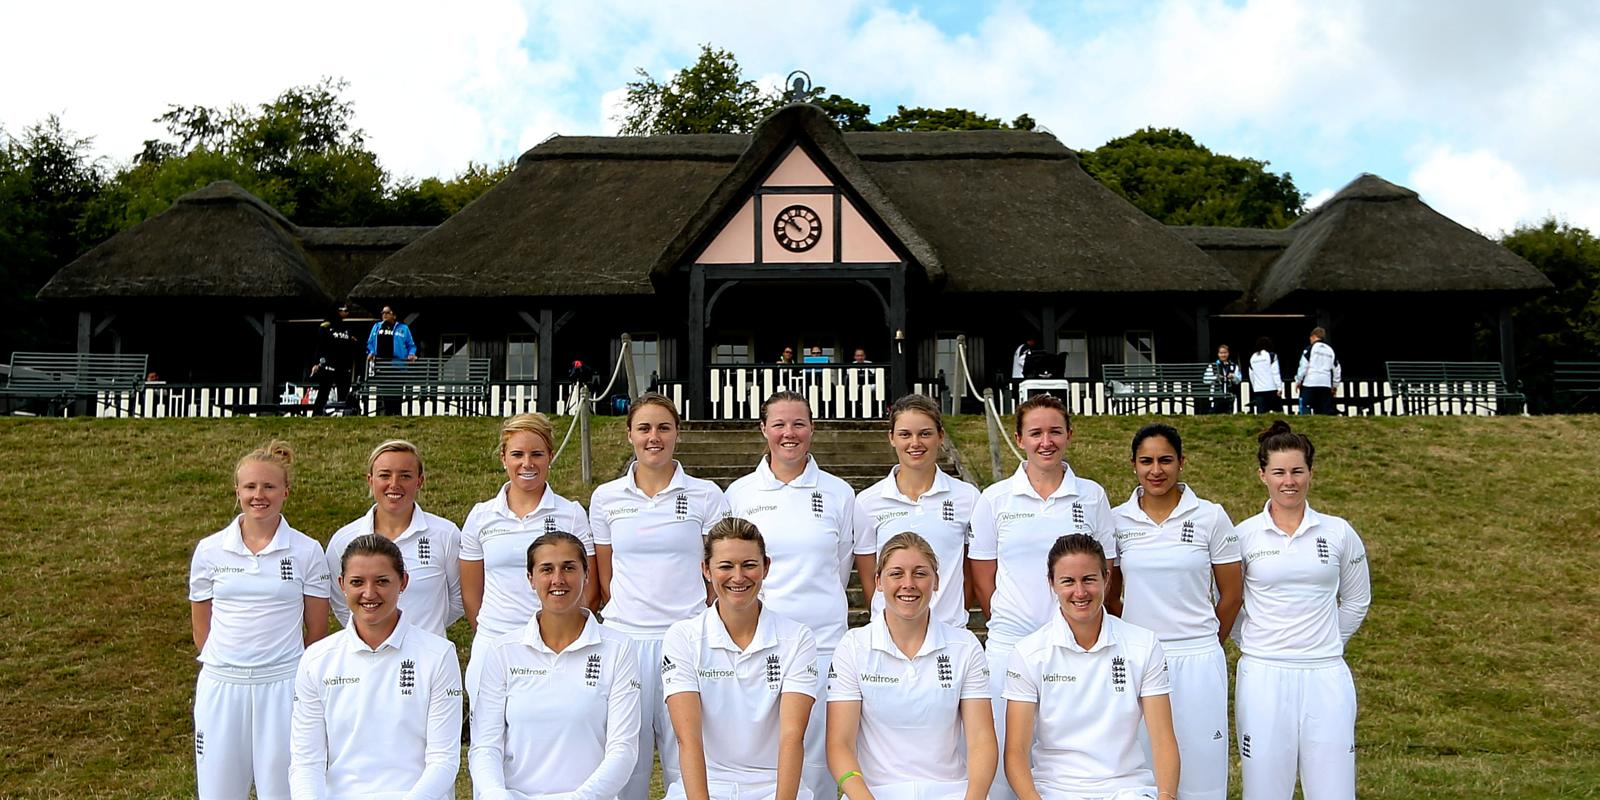 Sky to broadcast women\'s Test match cricket for the first time